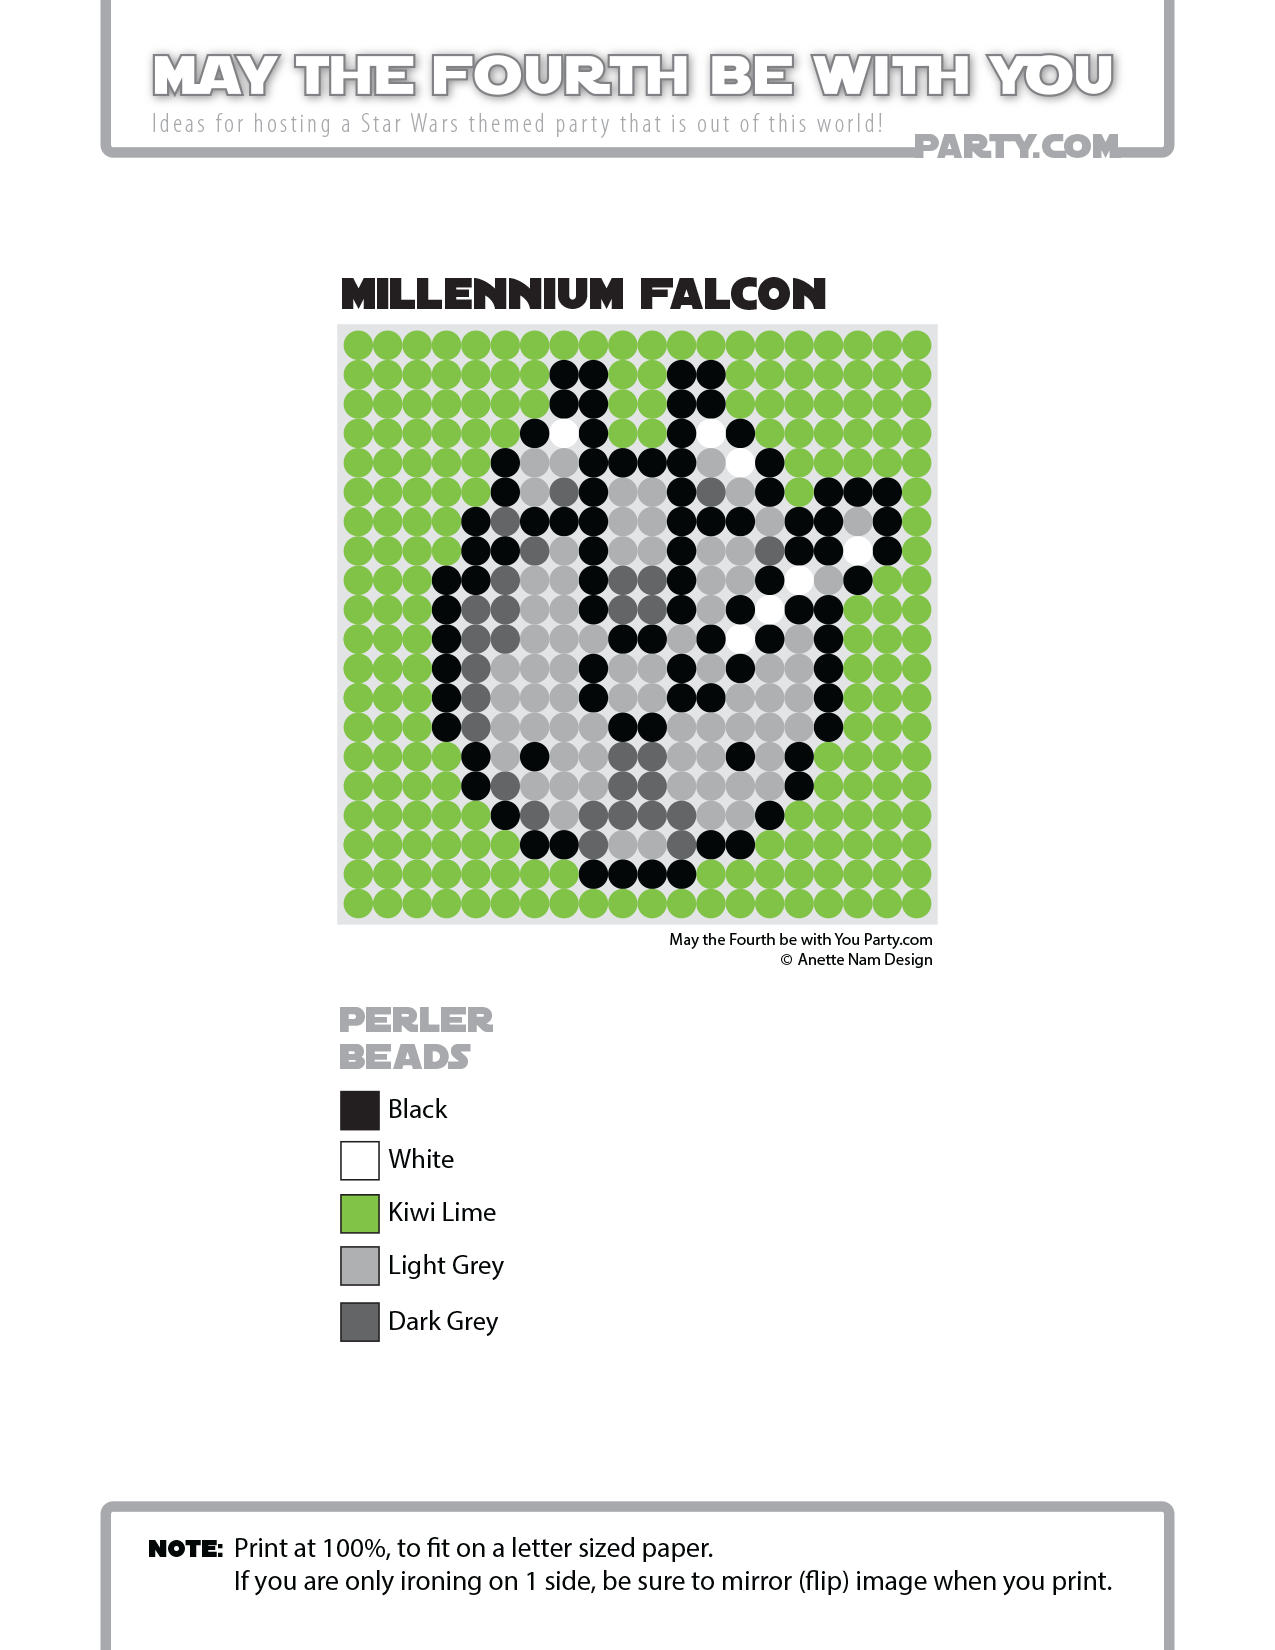 Millennium Falcon (Star Wars) Perler Pattern - May the 4th be with ...